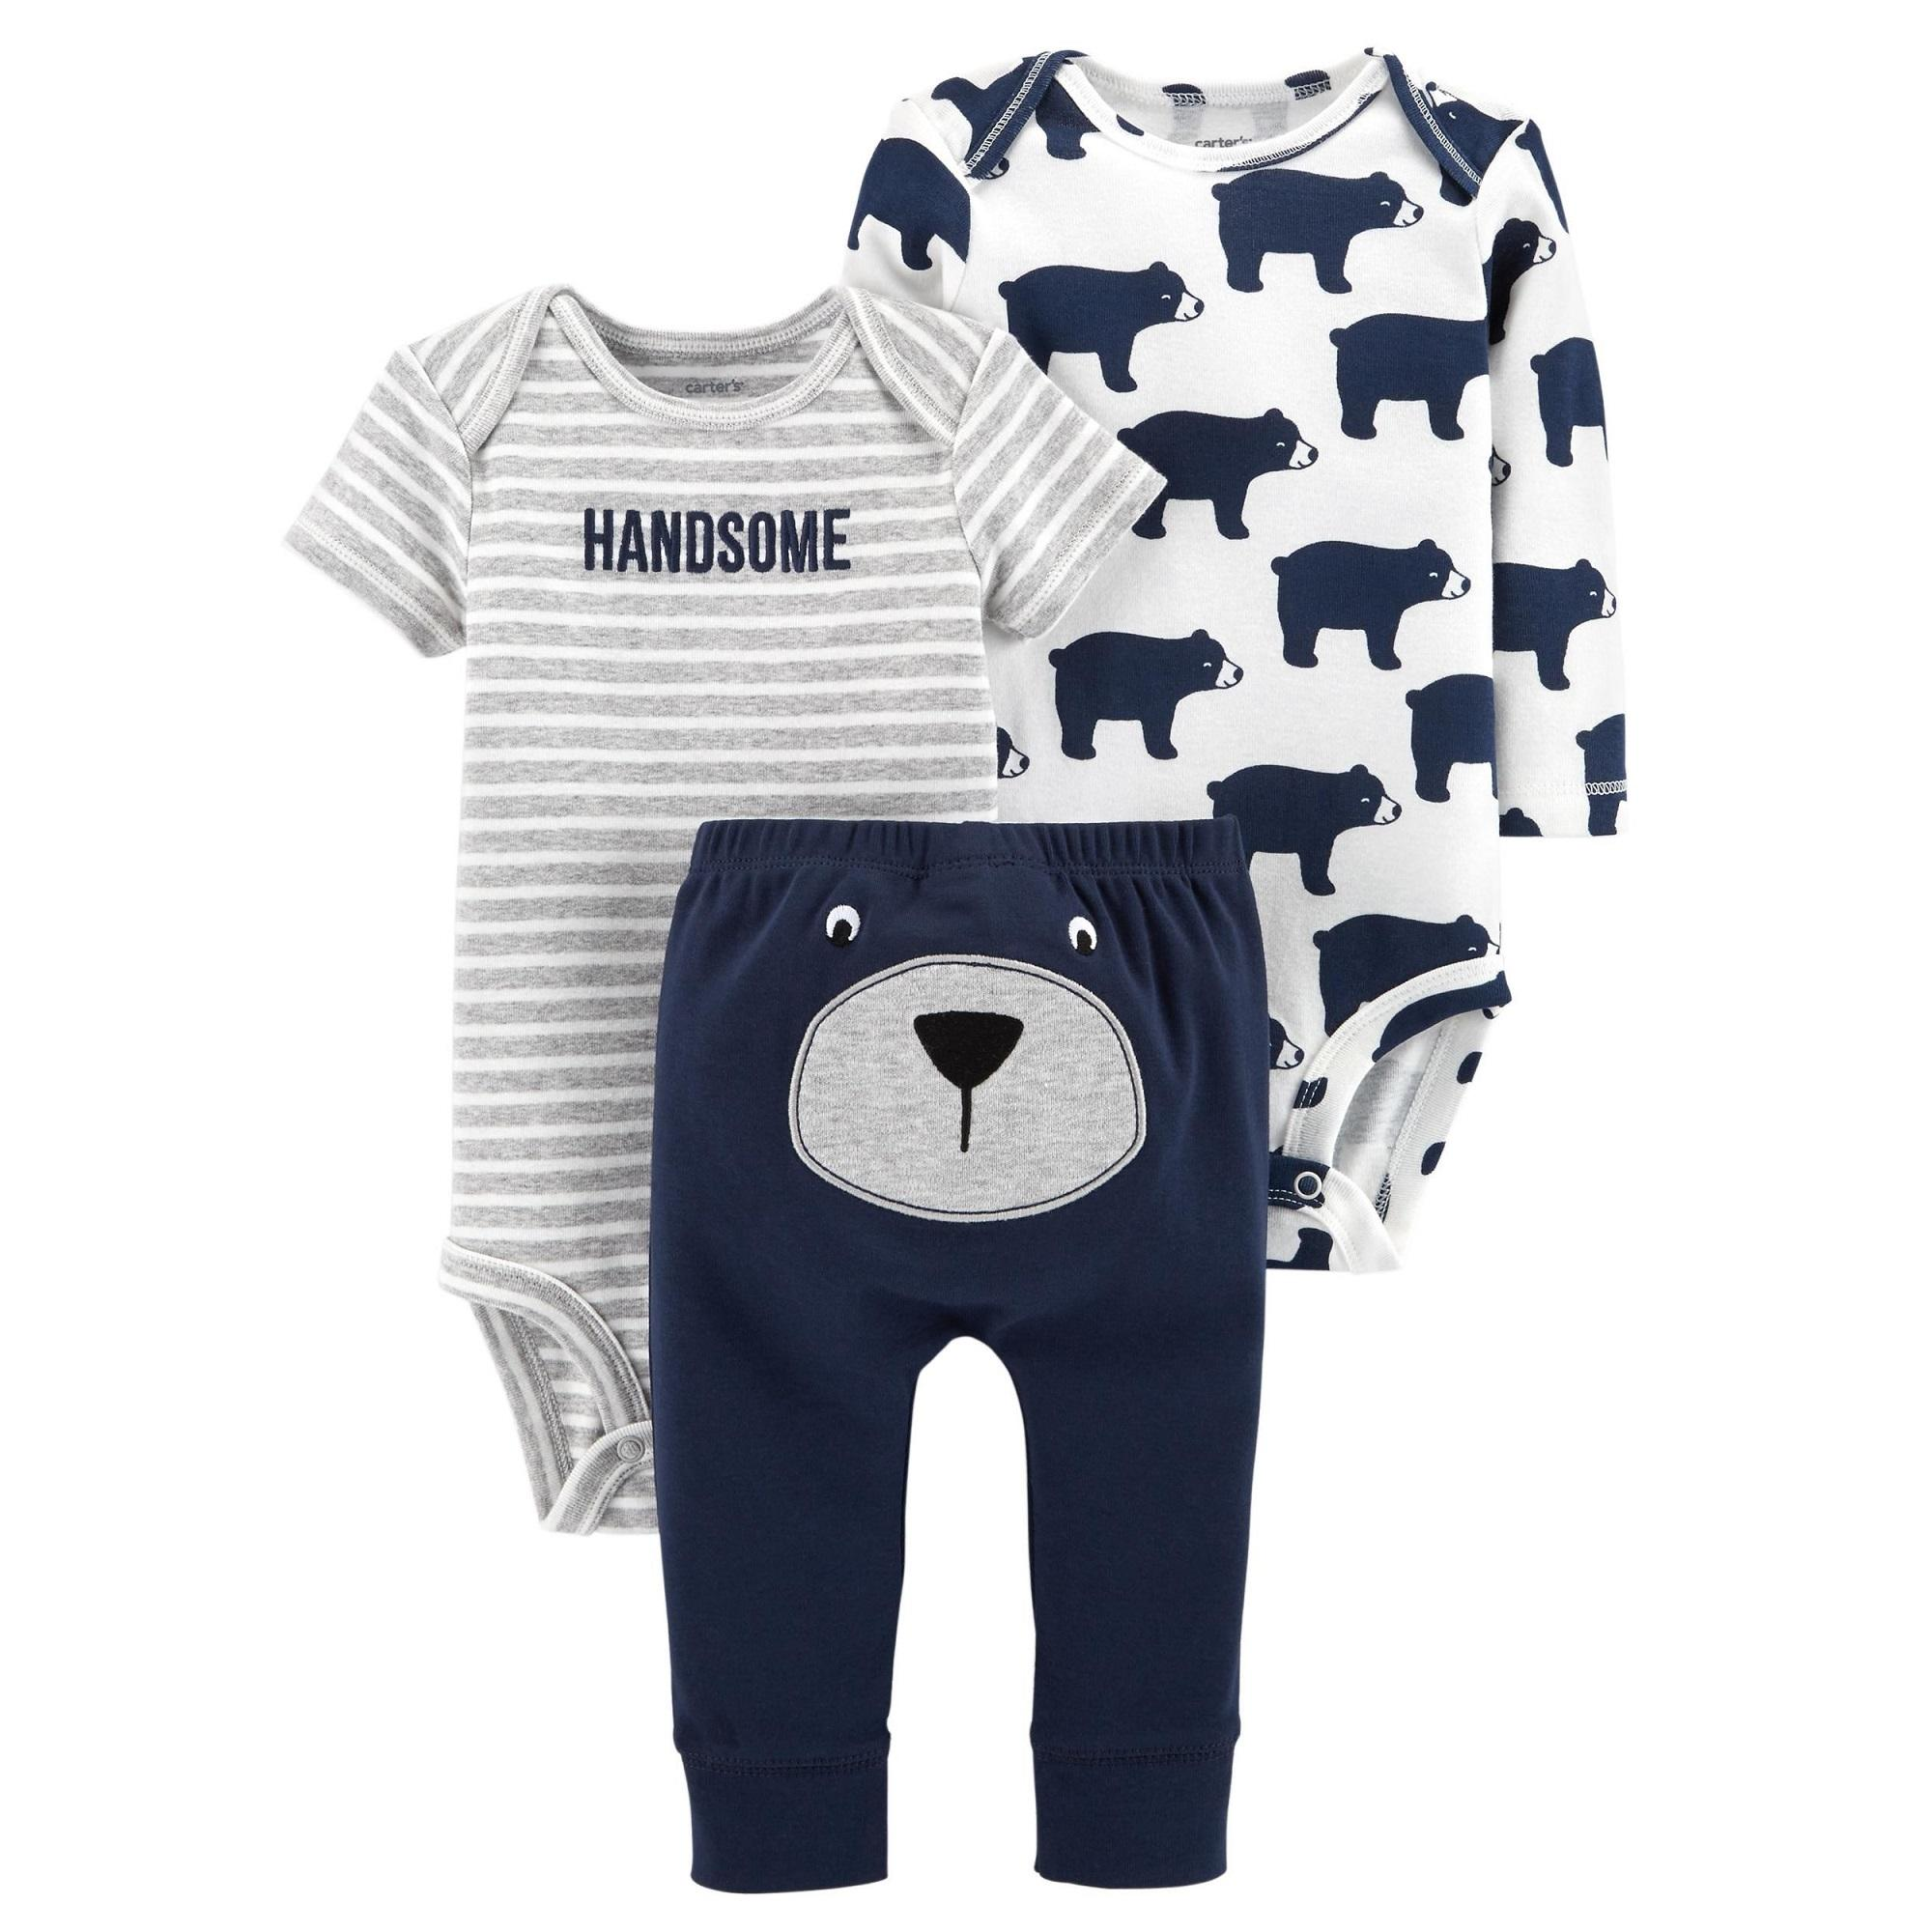 Caby133 Carters Baby Boys 3-Piece Little Character Set - Polar Bears By Little Gems.